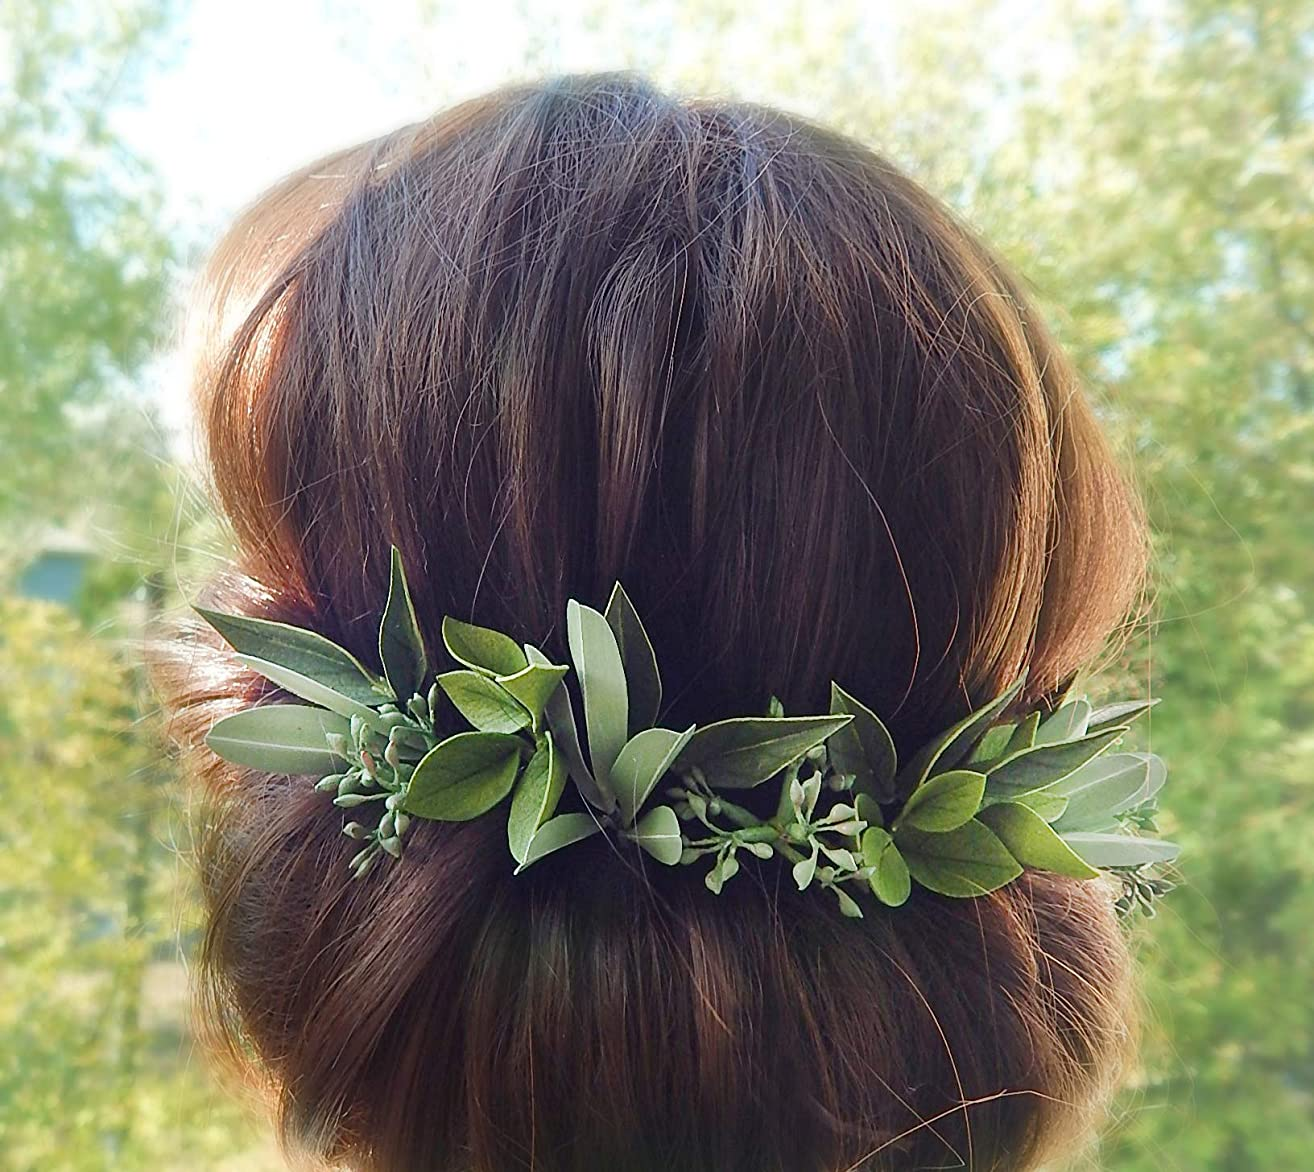 Floral Hair Pins with Green Leaves and Eucalyptus Seeded Set of 14 Greenery Handmade Headpiece